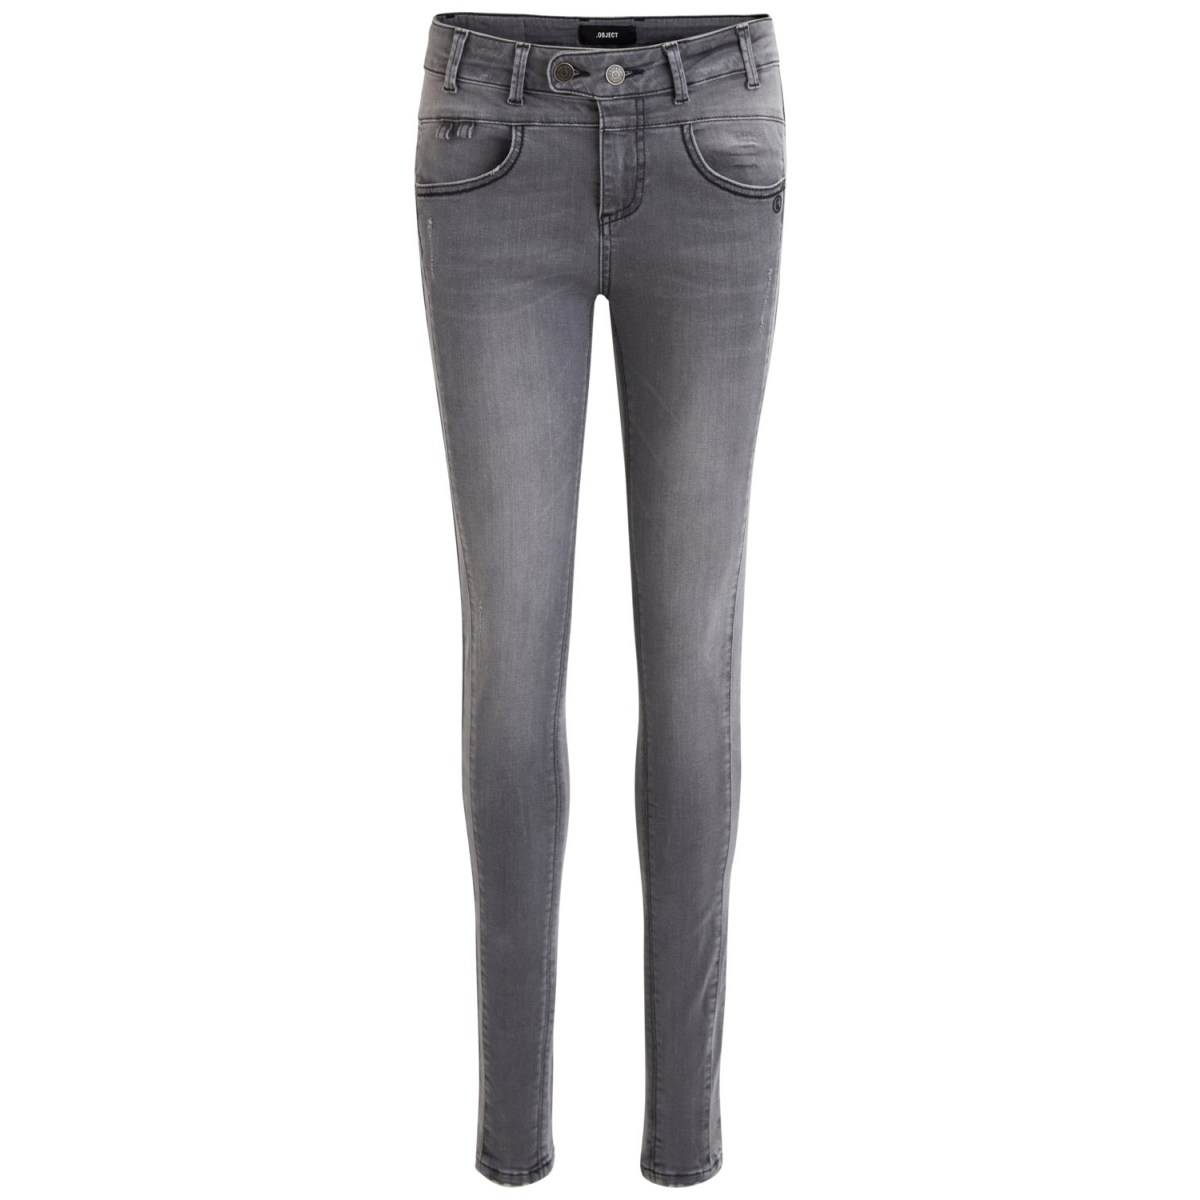 objup-c super stretch obb276 94 div 23026442 object jeans dark grey denim